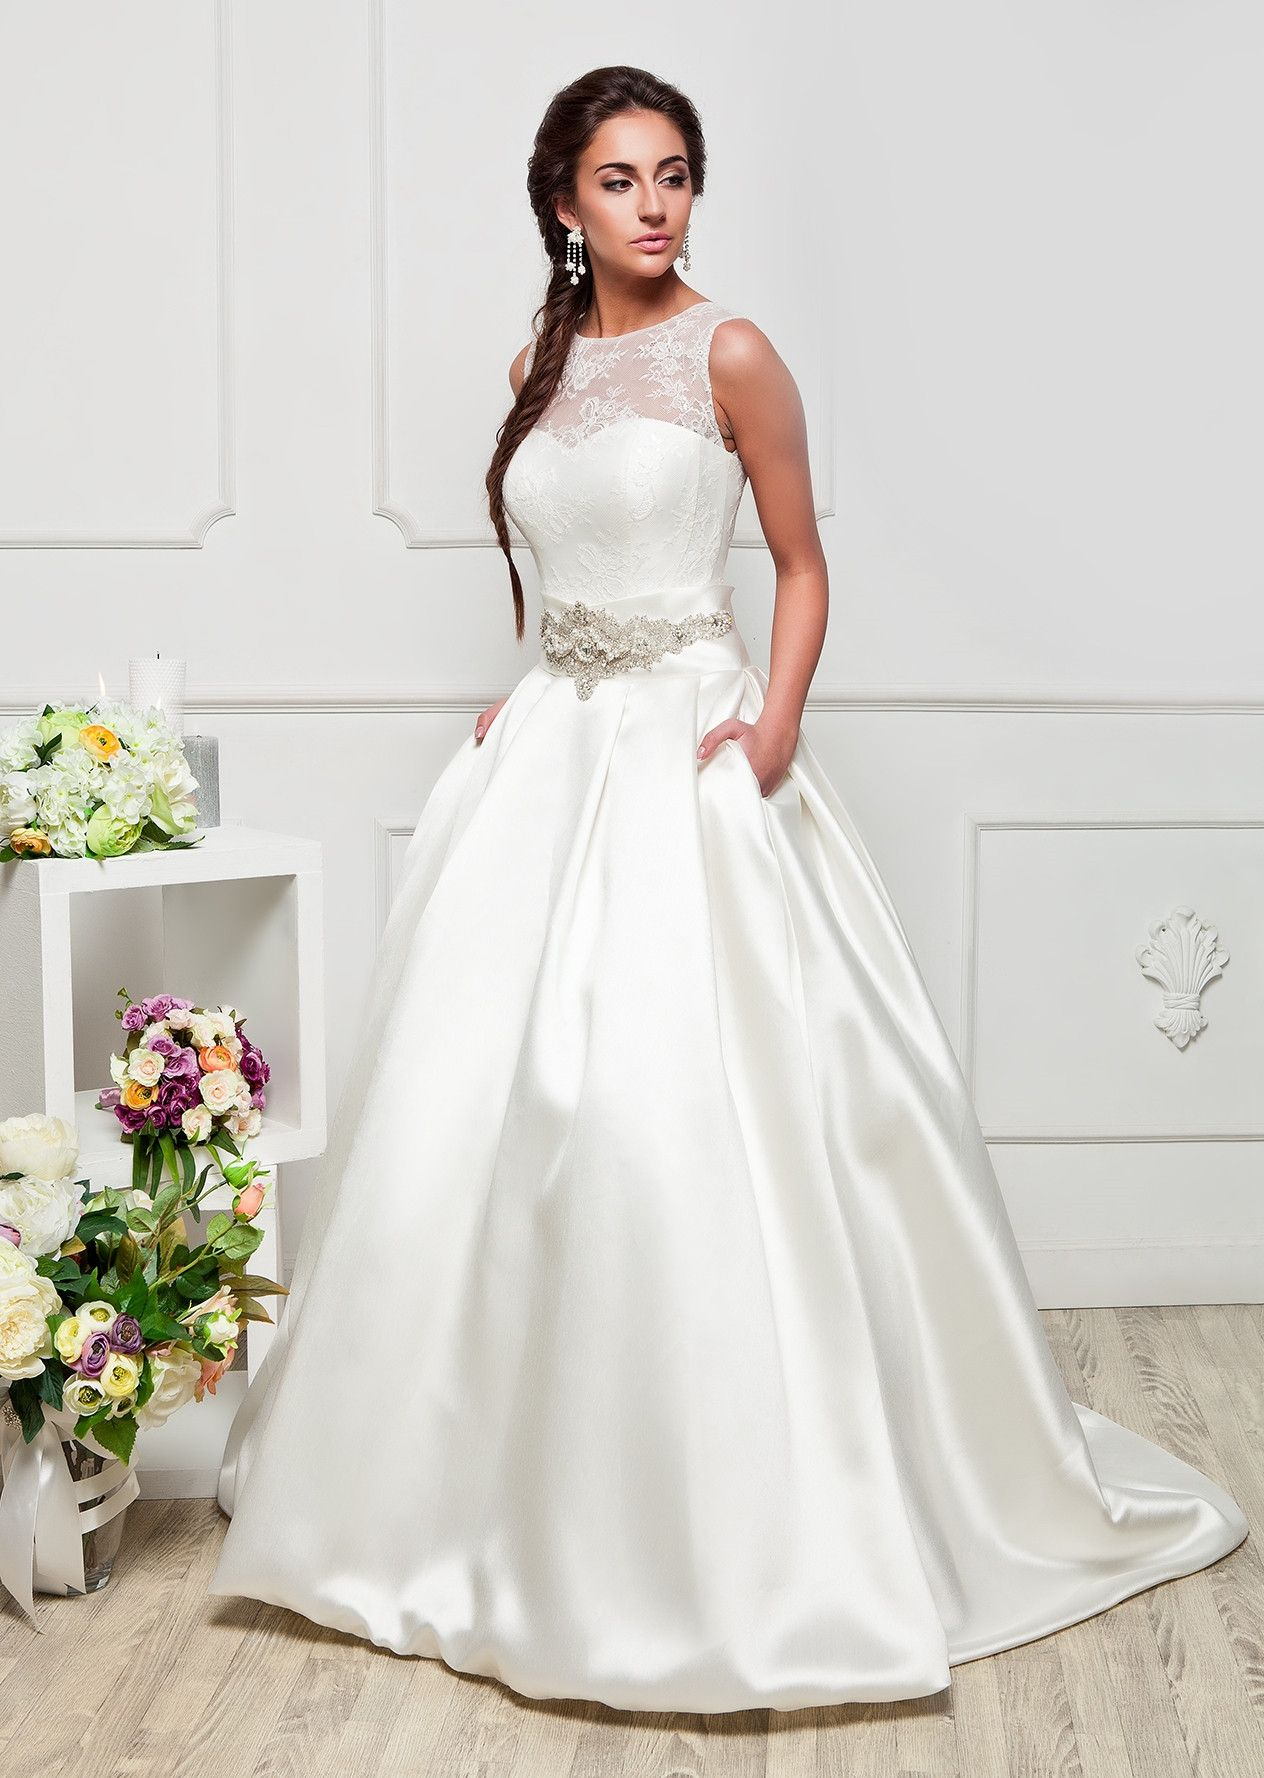 Satin wedding dress long ball gown wedding pinterest wedding